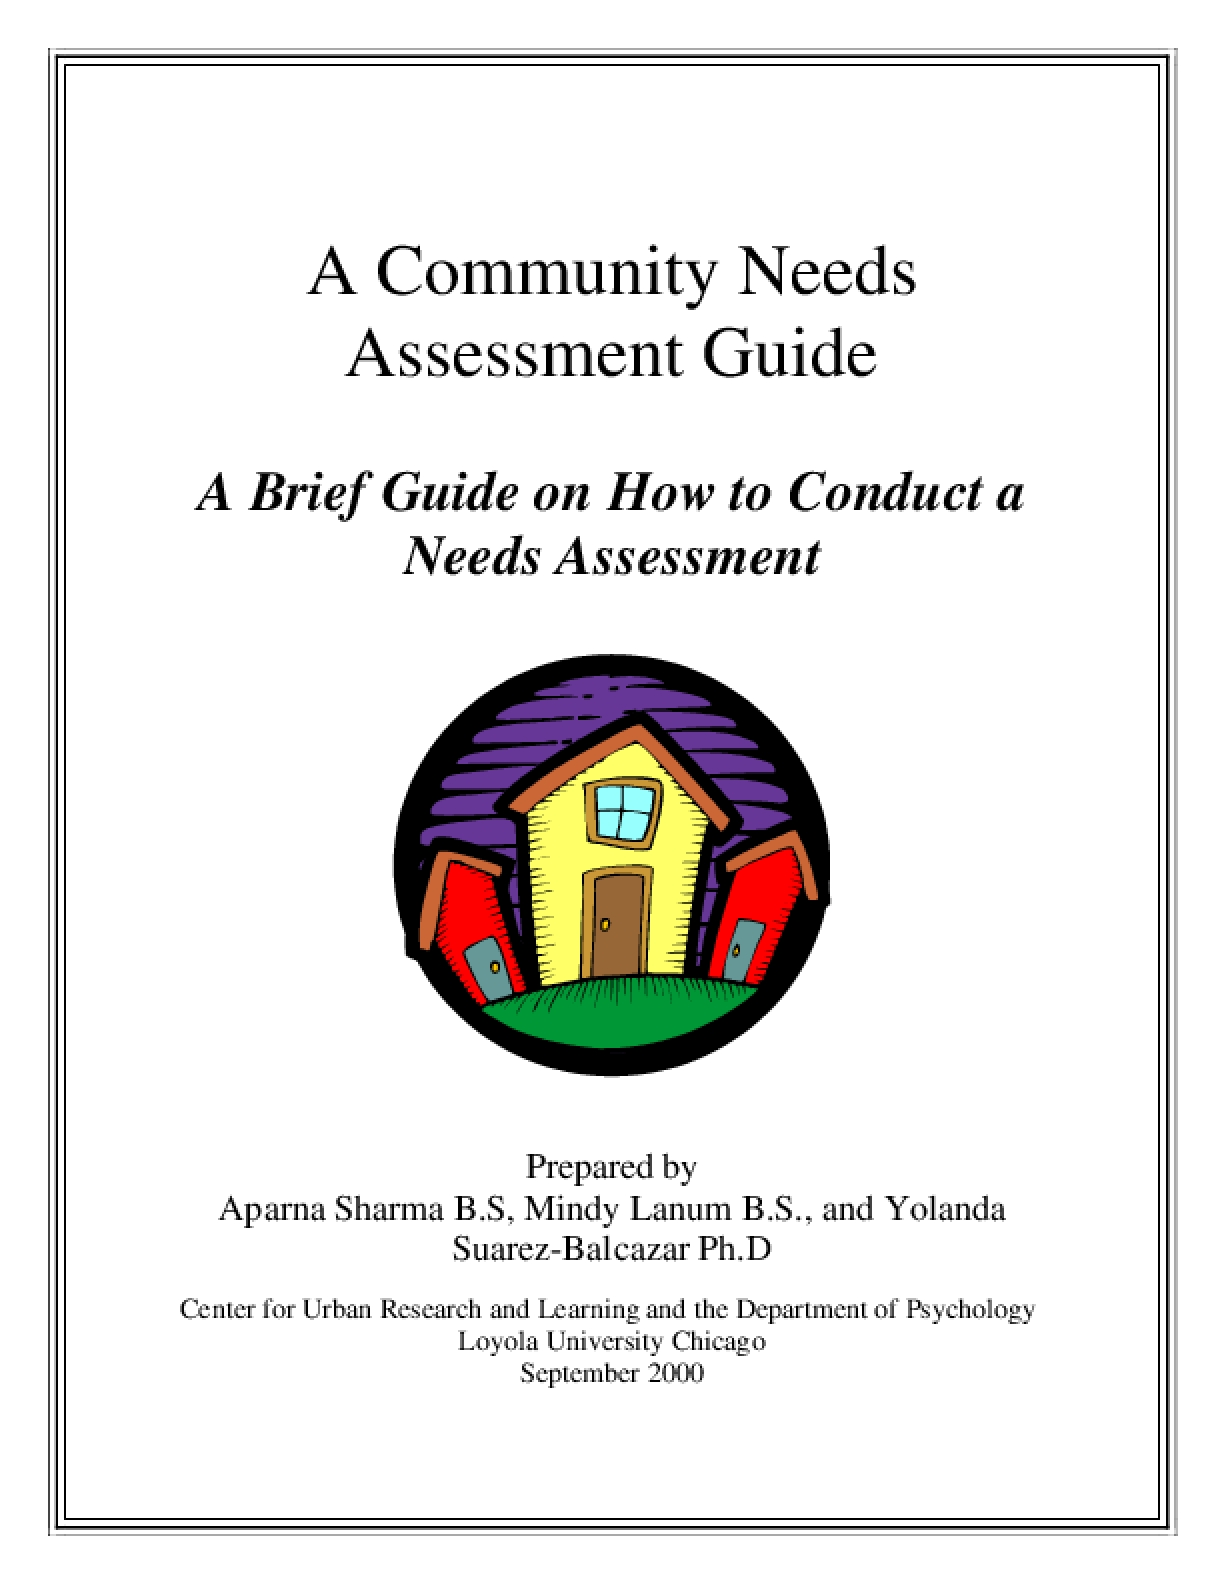 A Community Needs Assessment Guide: A Brief Guide on How to Conduct a Needs Assessment